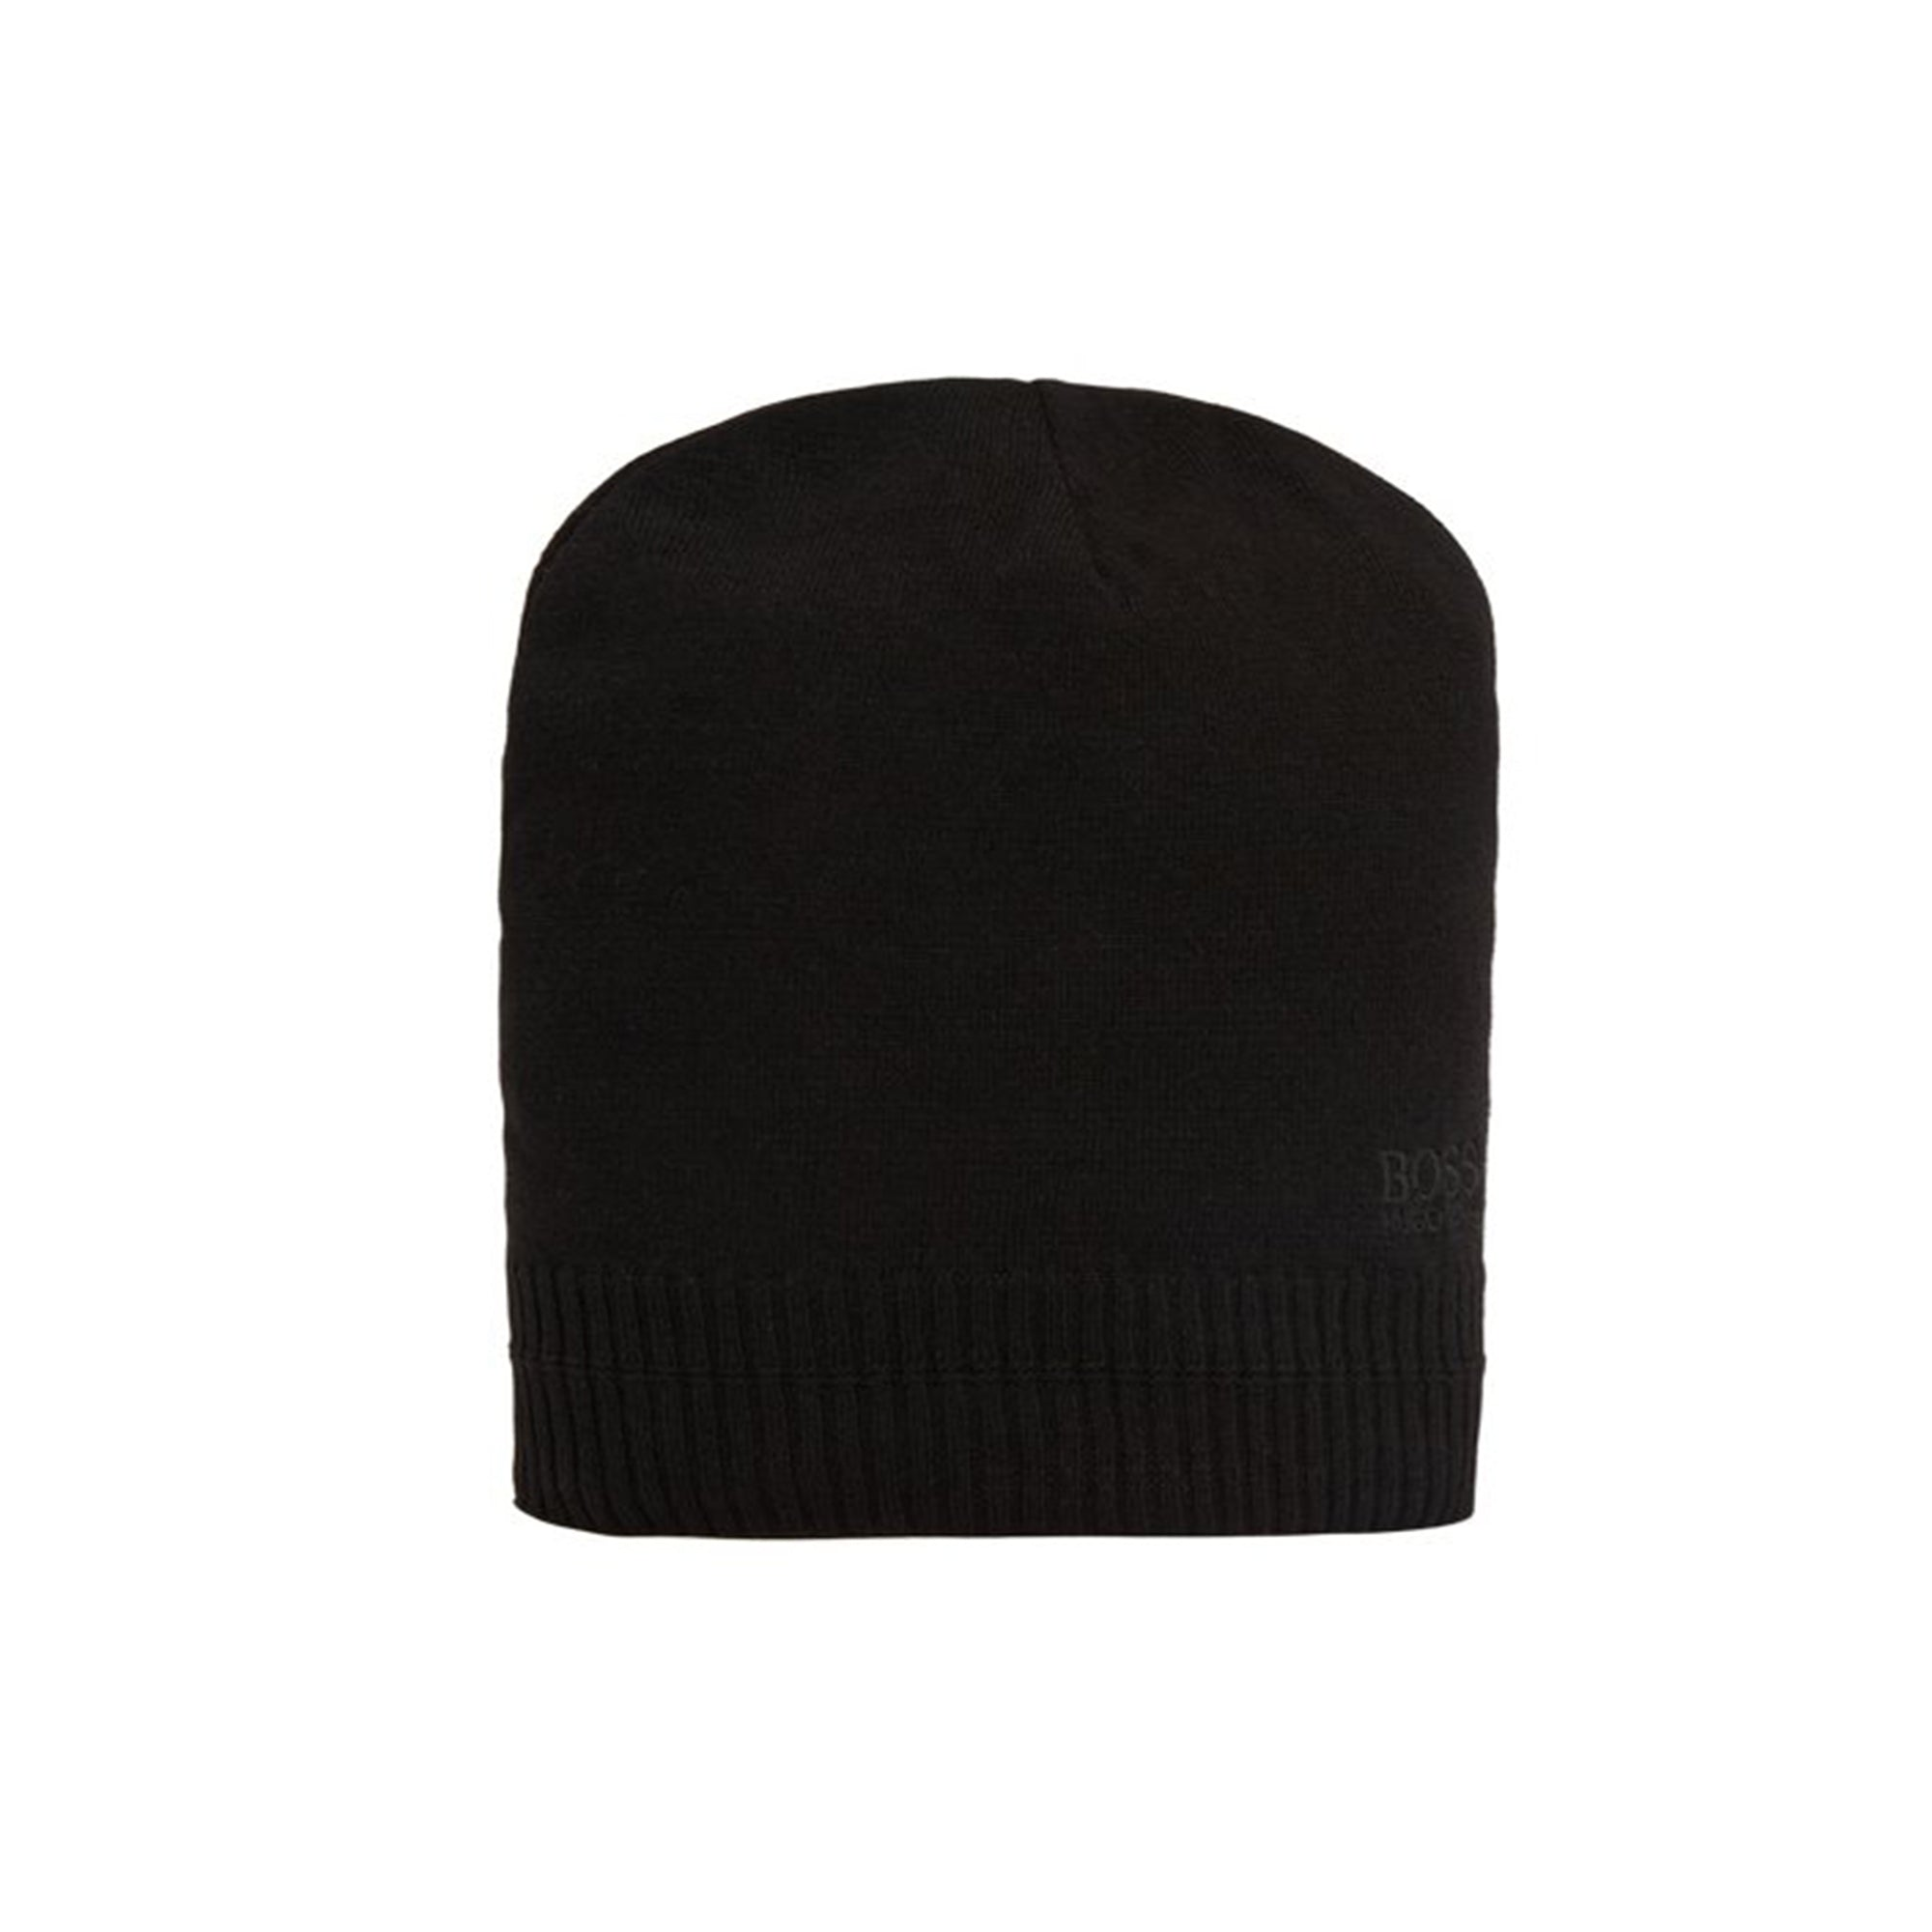 Boss Basic Beanie Hat